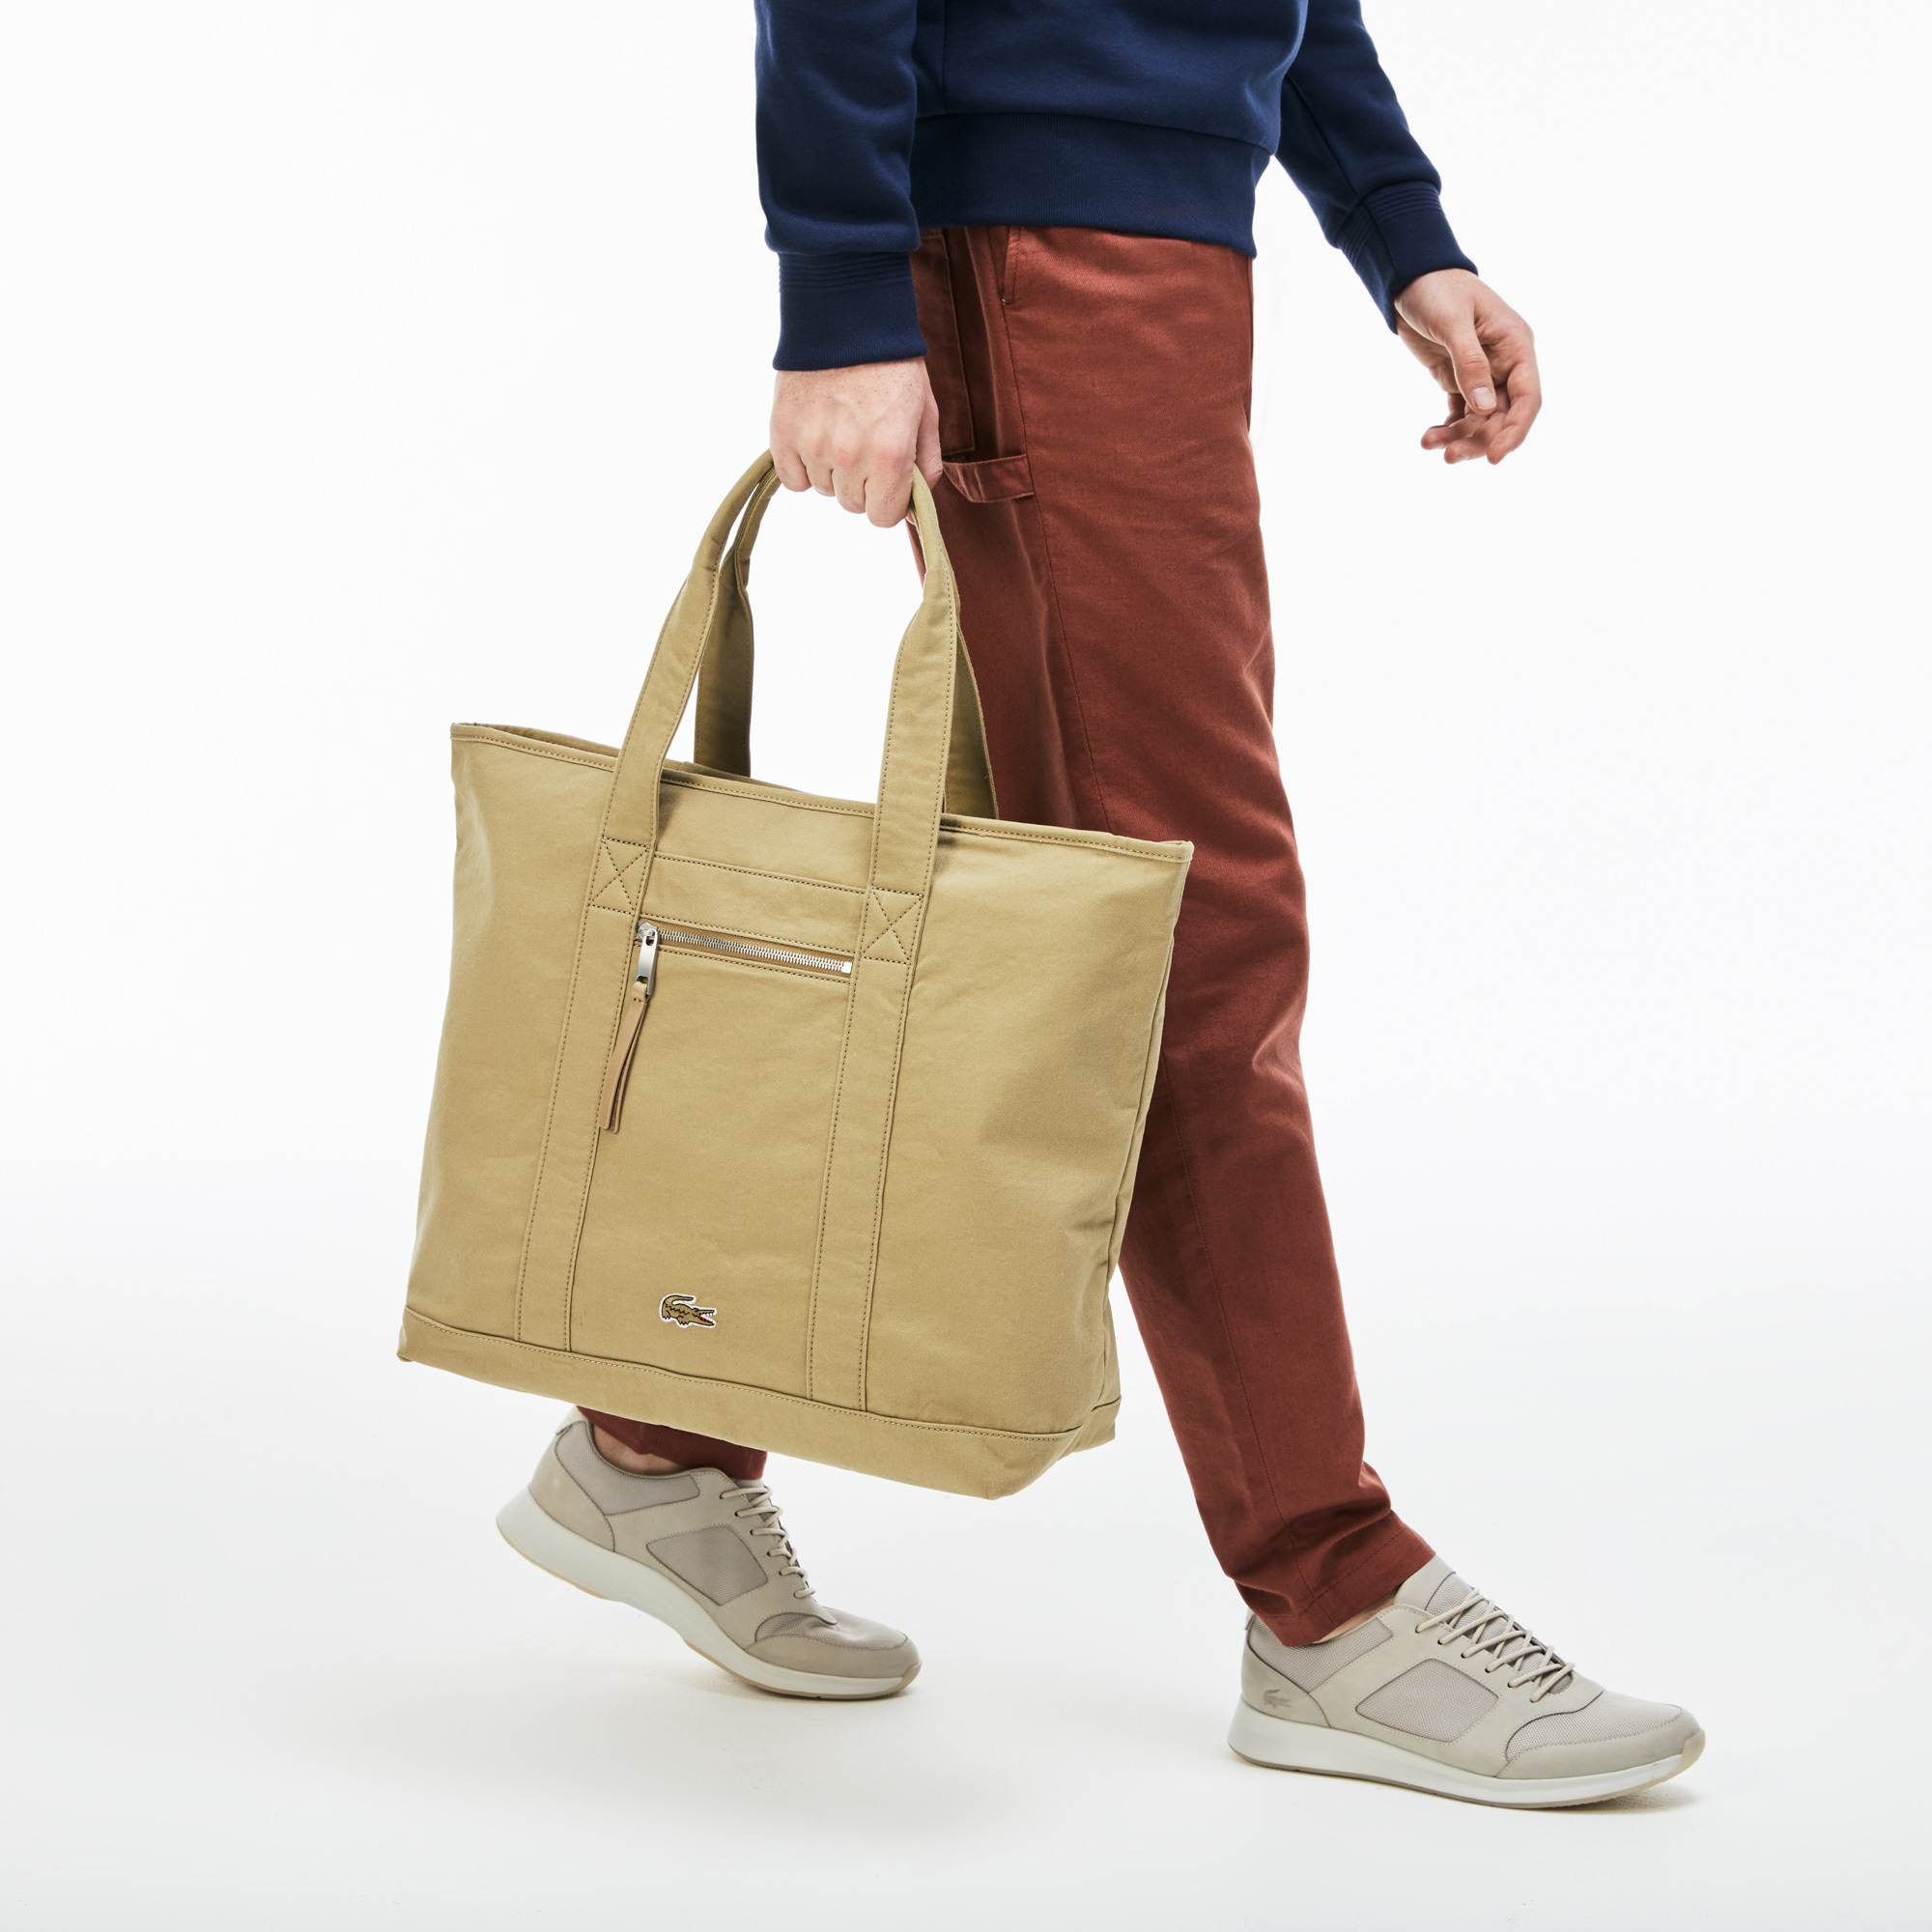 Men's Summer Faded Cotton Large Zip Tote Bag